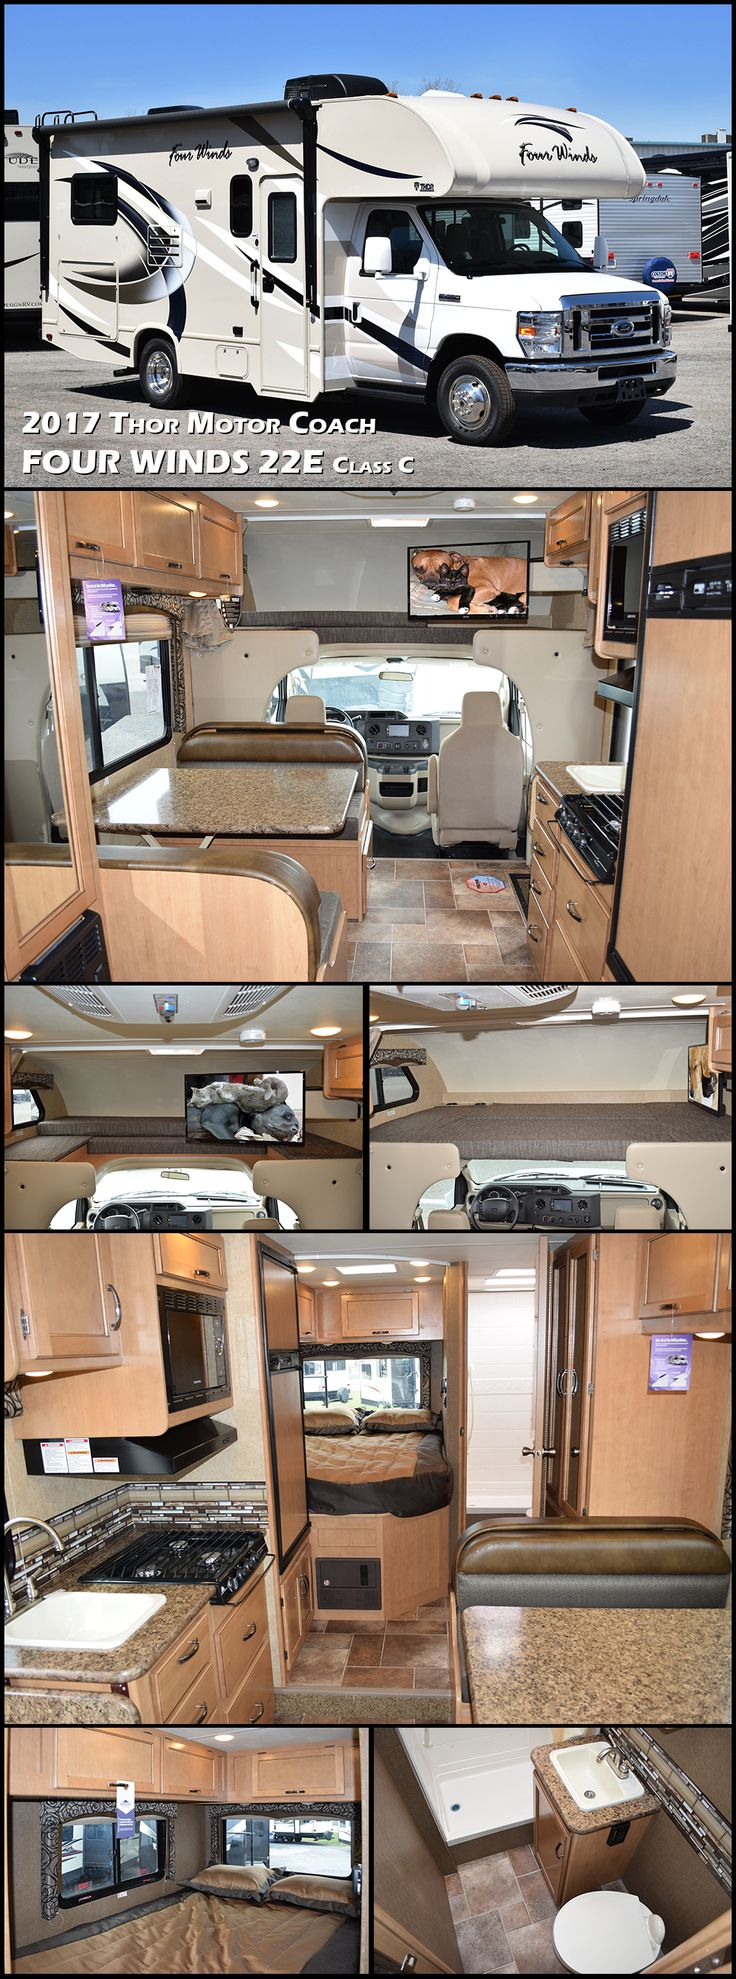 Let the adventures begin in this four winds 22e class c motorhome by thor motor coach